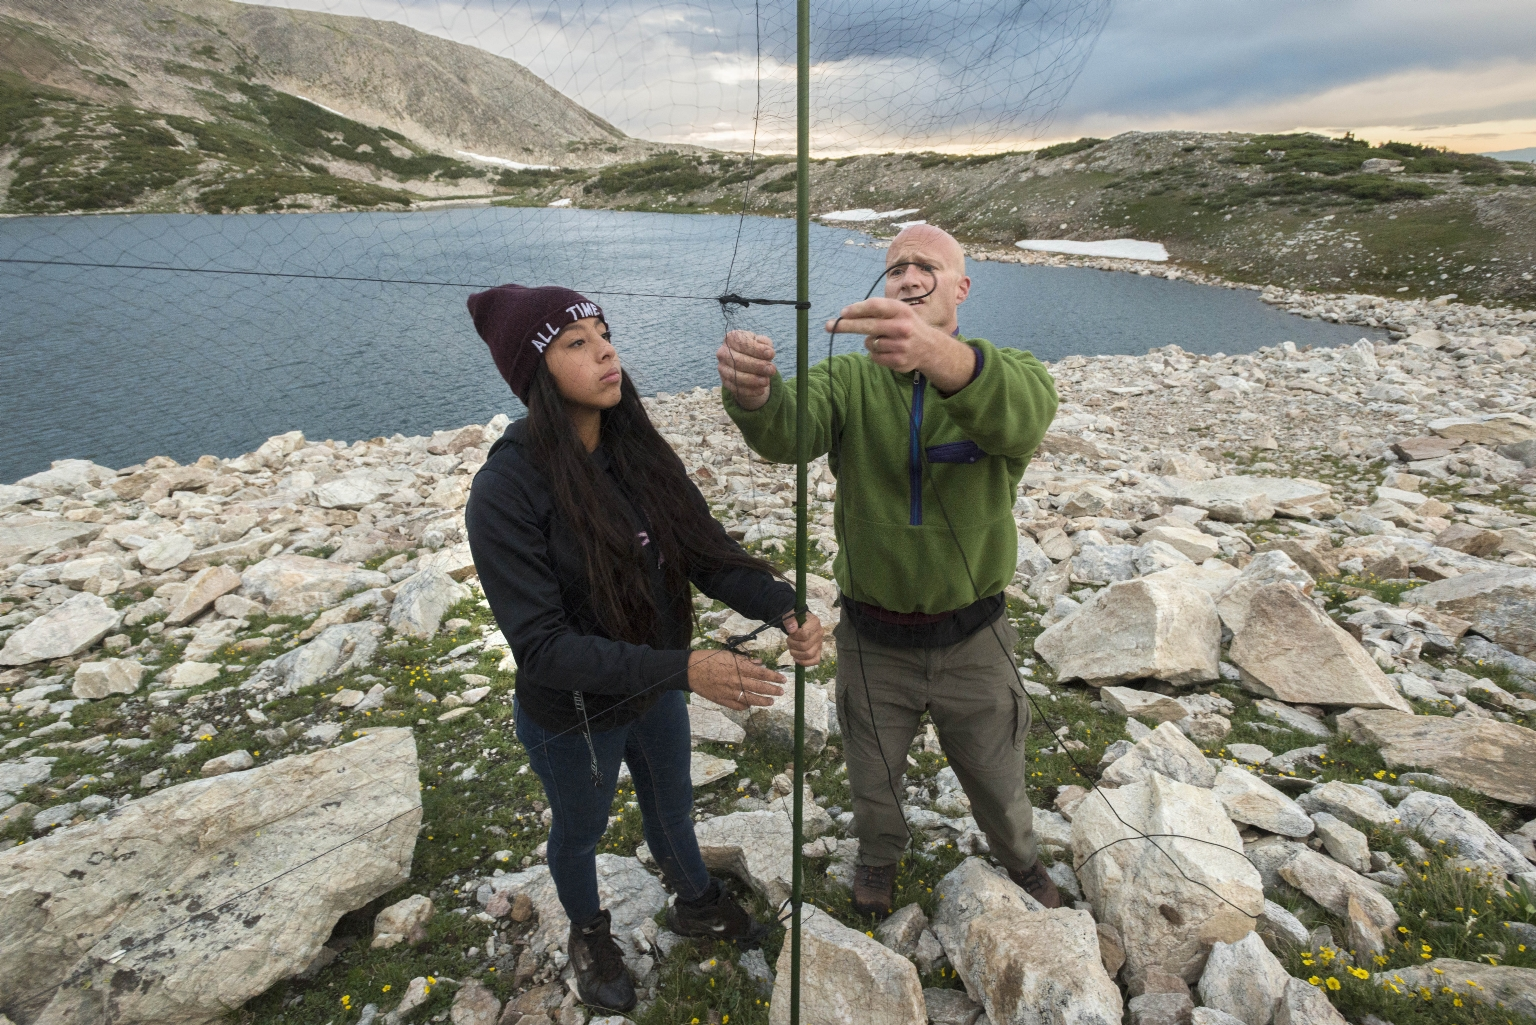 Ornithology fieldwork with Dr. Garth Spellman and Teen Science Scholars